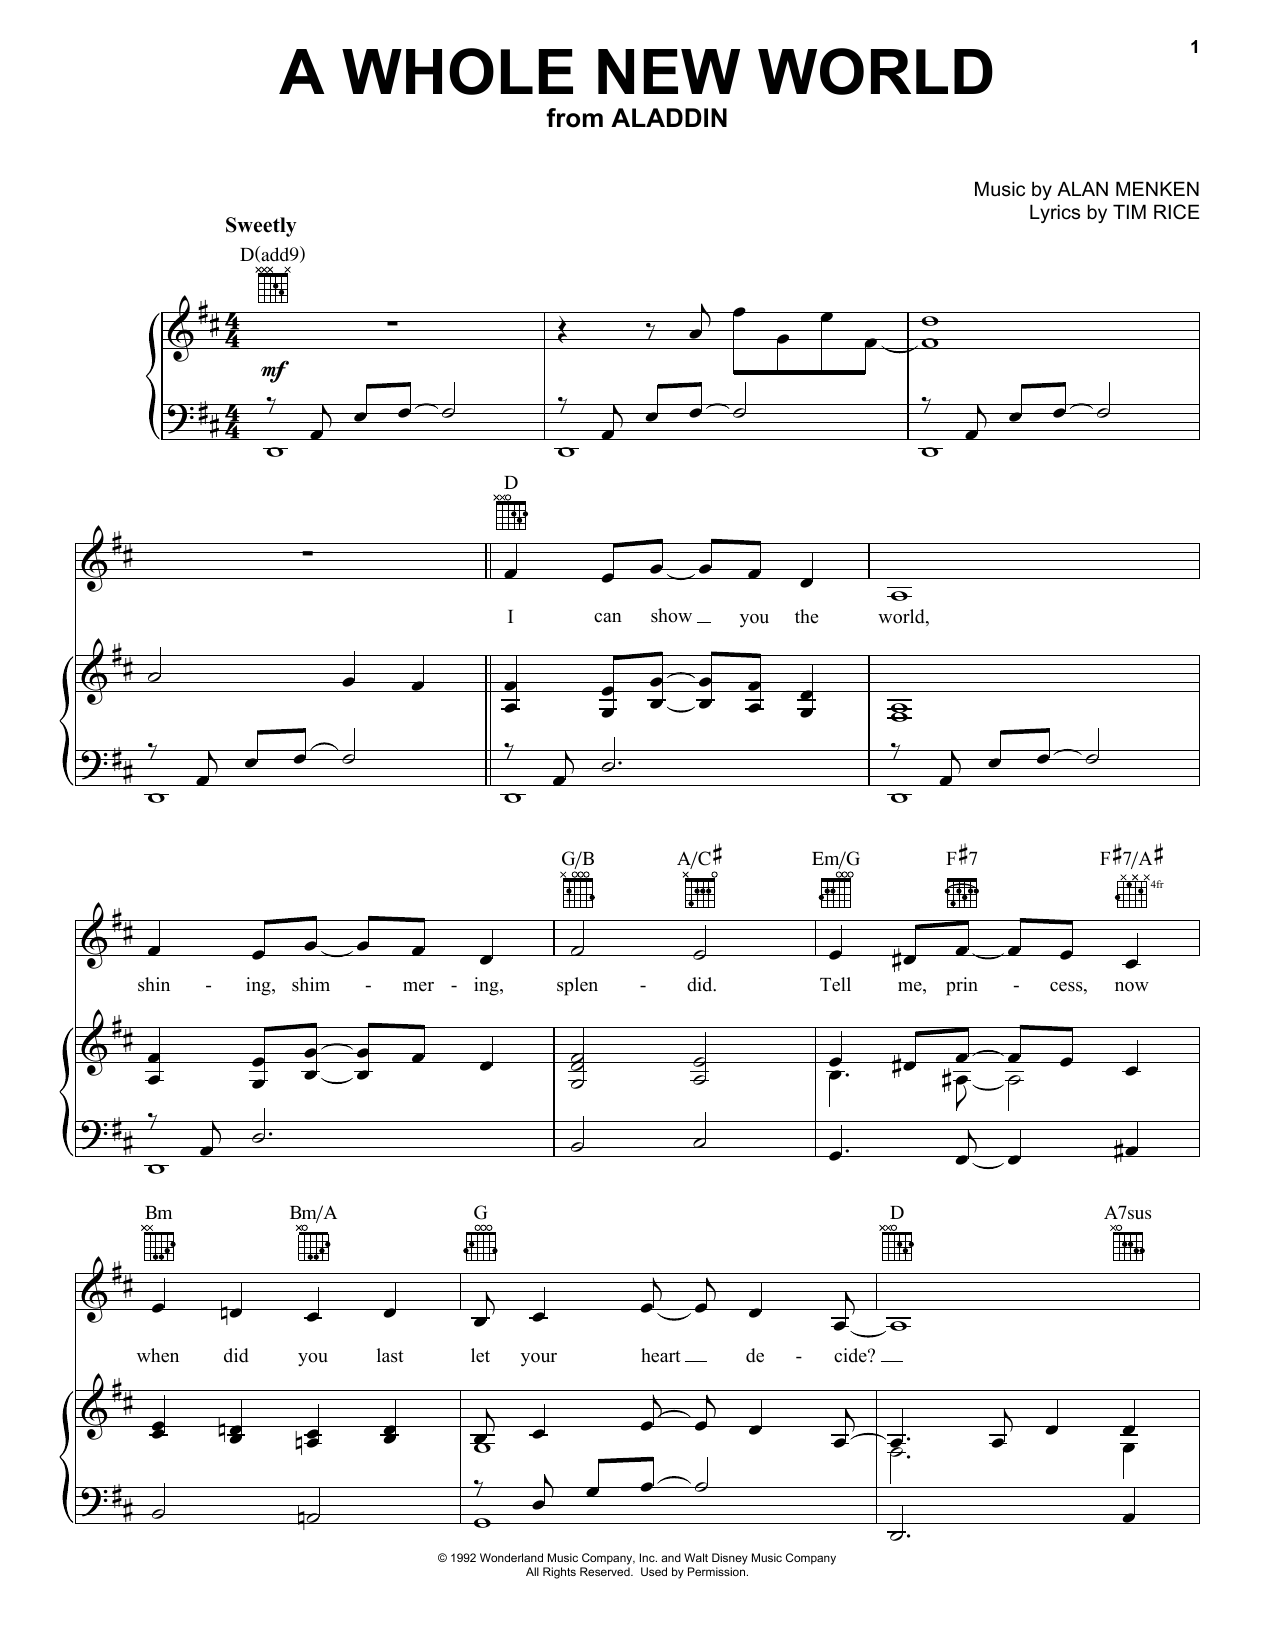 Alan Menken A Whole New World (from Aladdin) sheet music notes and chords